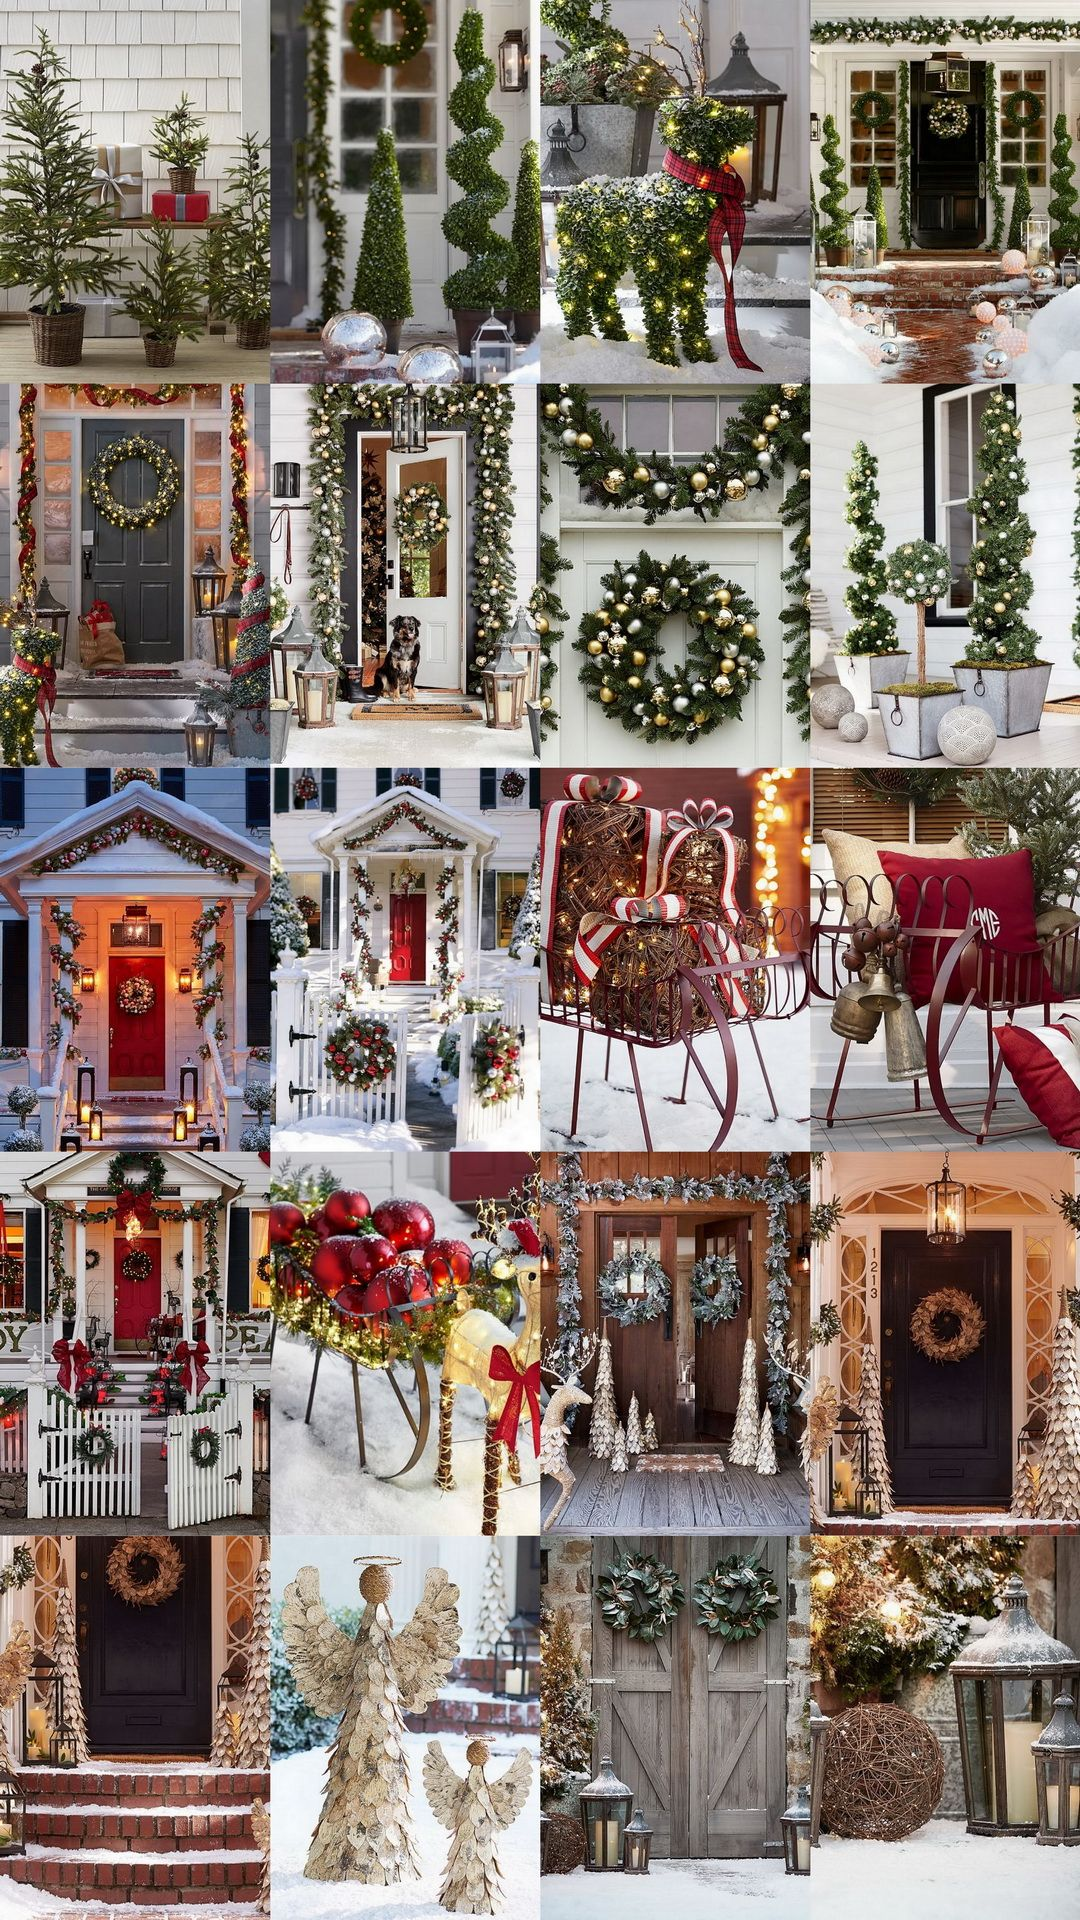 20 exceptional outdoor christmas decorations potterybarn - Pottery Barn Outdoor Christmas Decorations